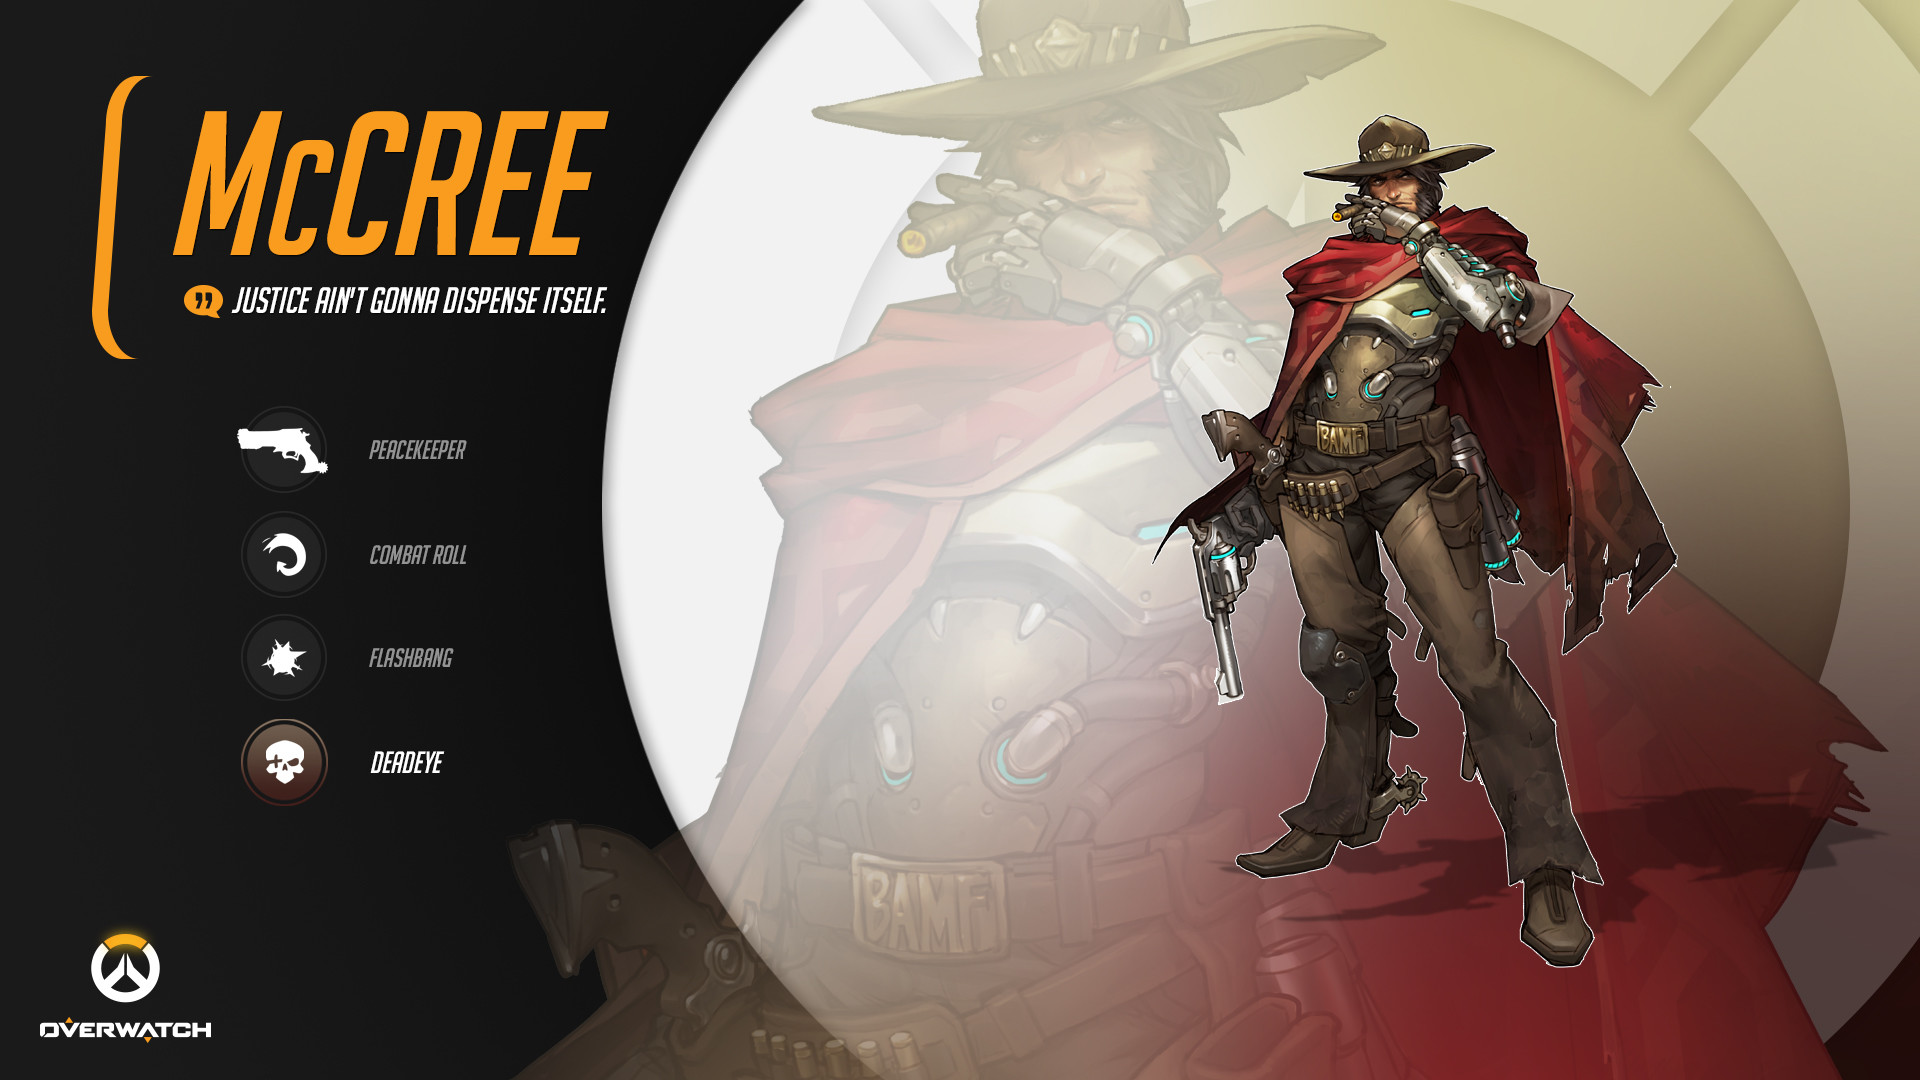 Mccree wallpapers 88 images 2675x2006 graves twisted fate vs mccree by hozure hd wallpaper fan art artwork league of legends voltagebd Images